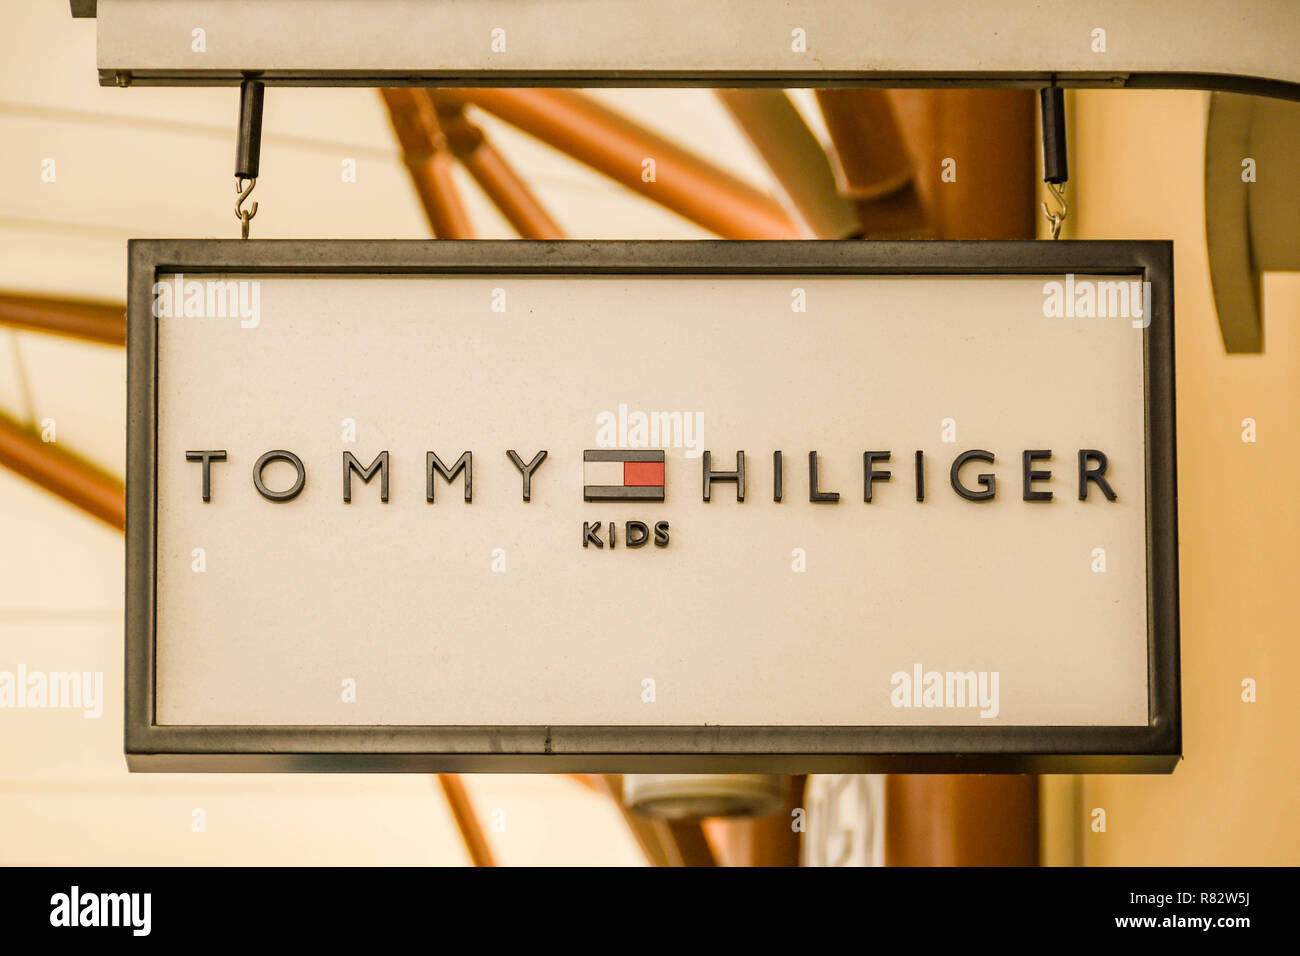 b465e489d Tommy Hilfiger Outlet Store Outlet Stock Photos & Tommy Hilfiger ...